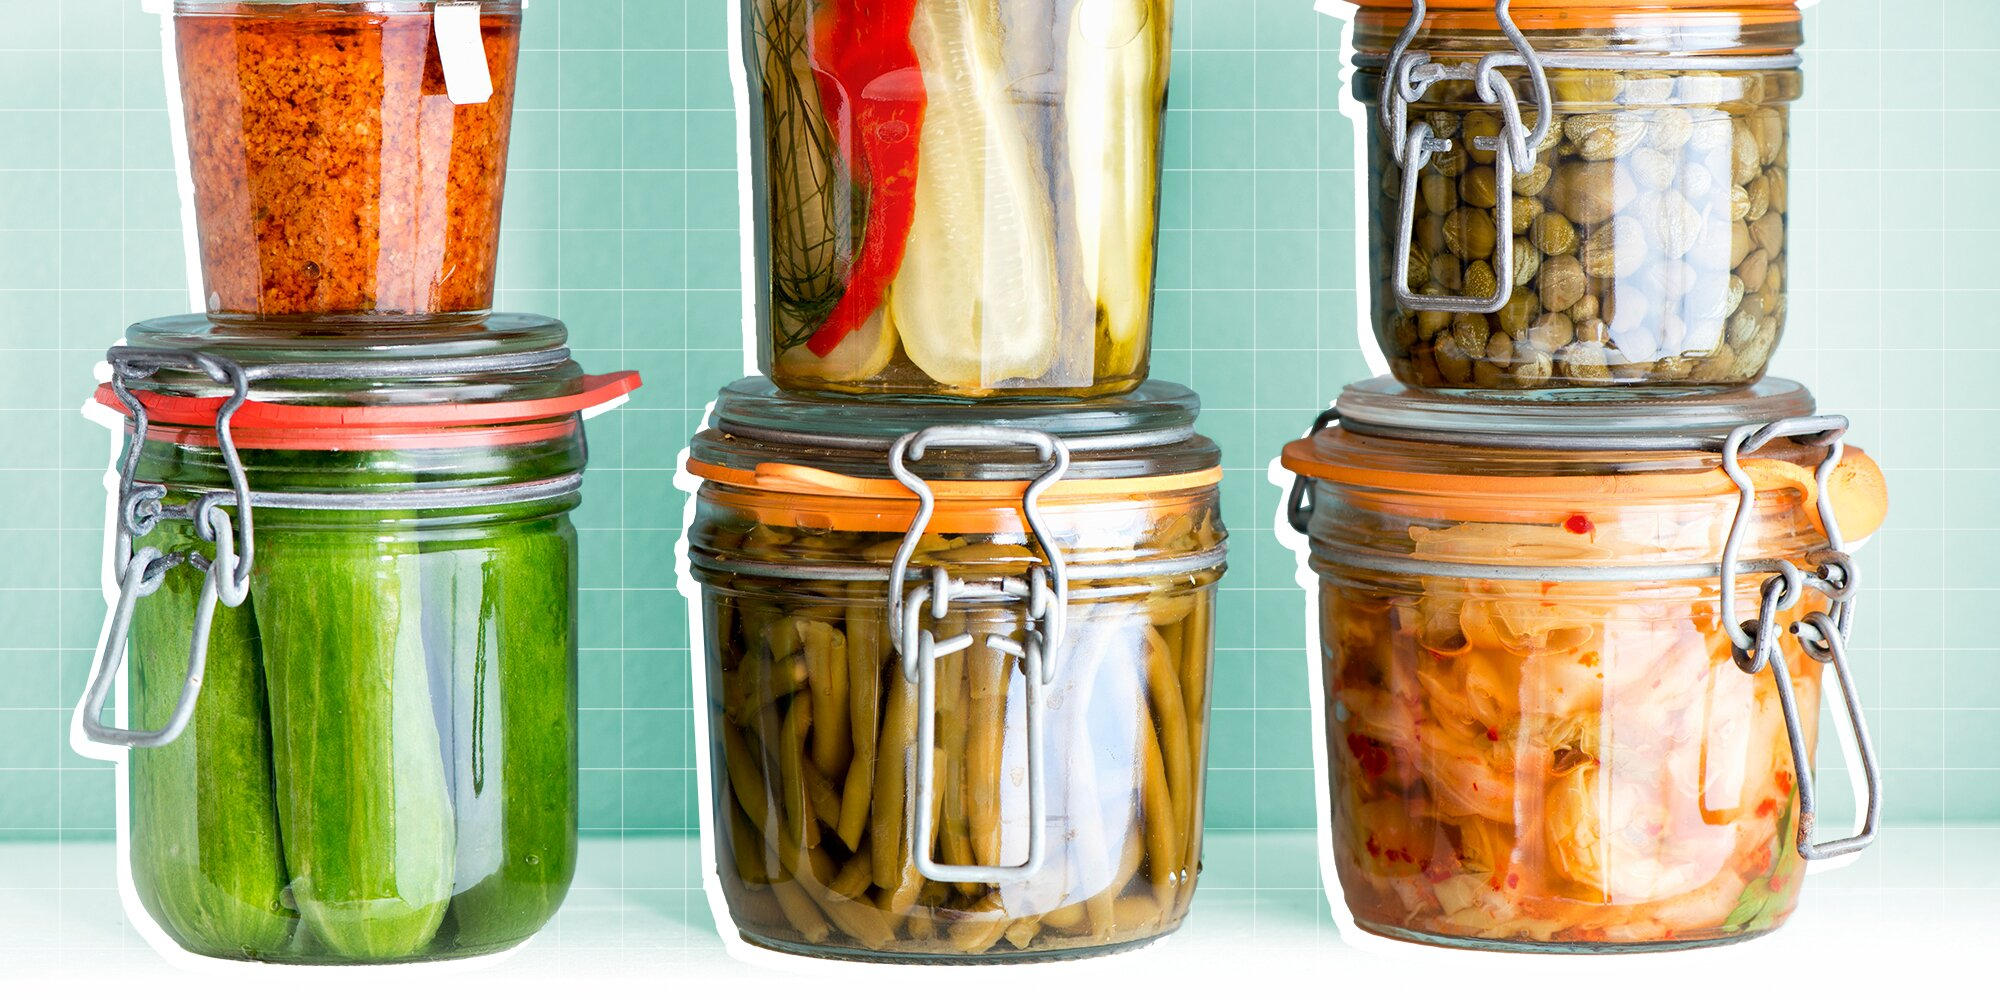 The 22 Best Jarred Items to Have in Your Pantry, According to Chefs